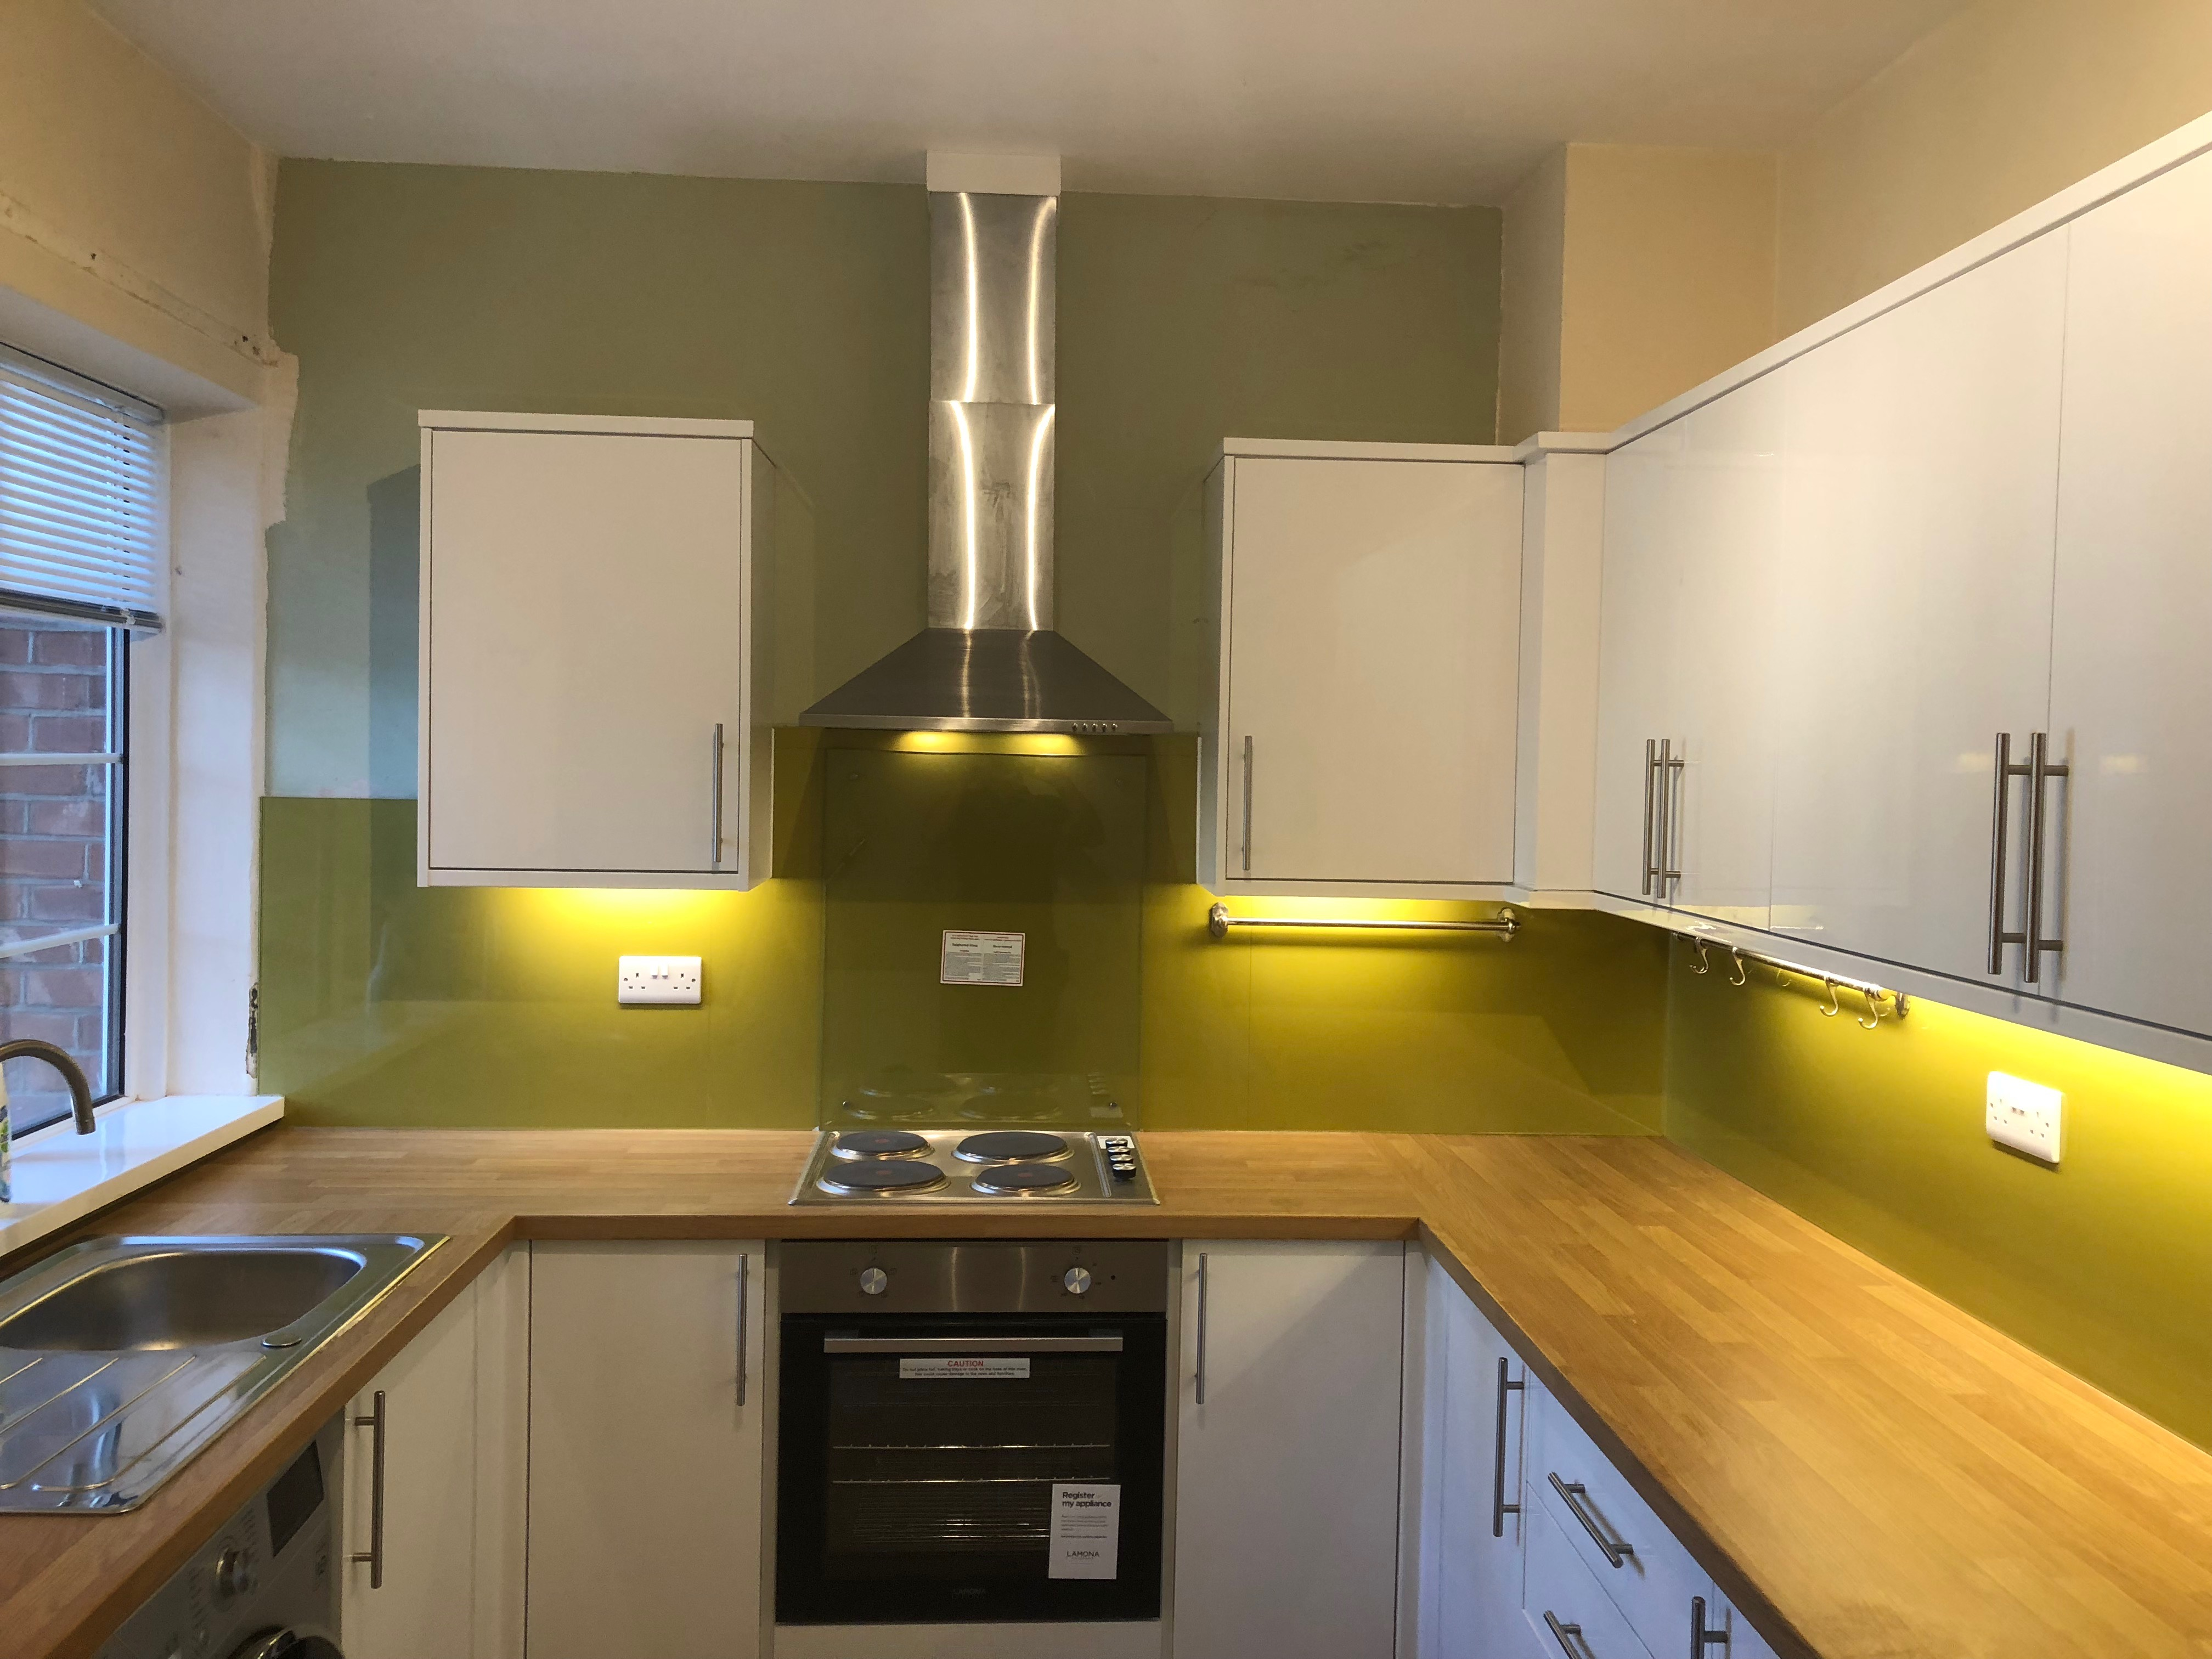 kitchen electrics aid pans electrician worthing new 2 paul mayer electrical